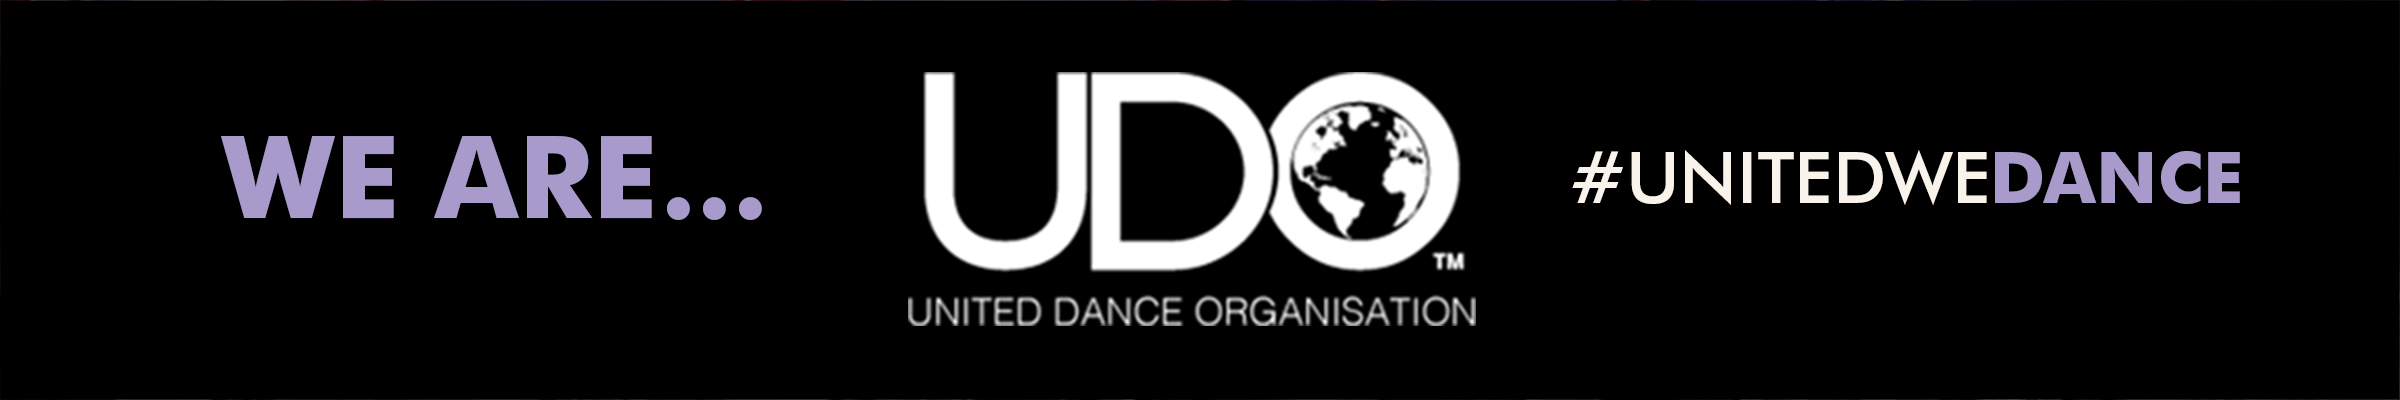 We are the United Dance Organisation UDO